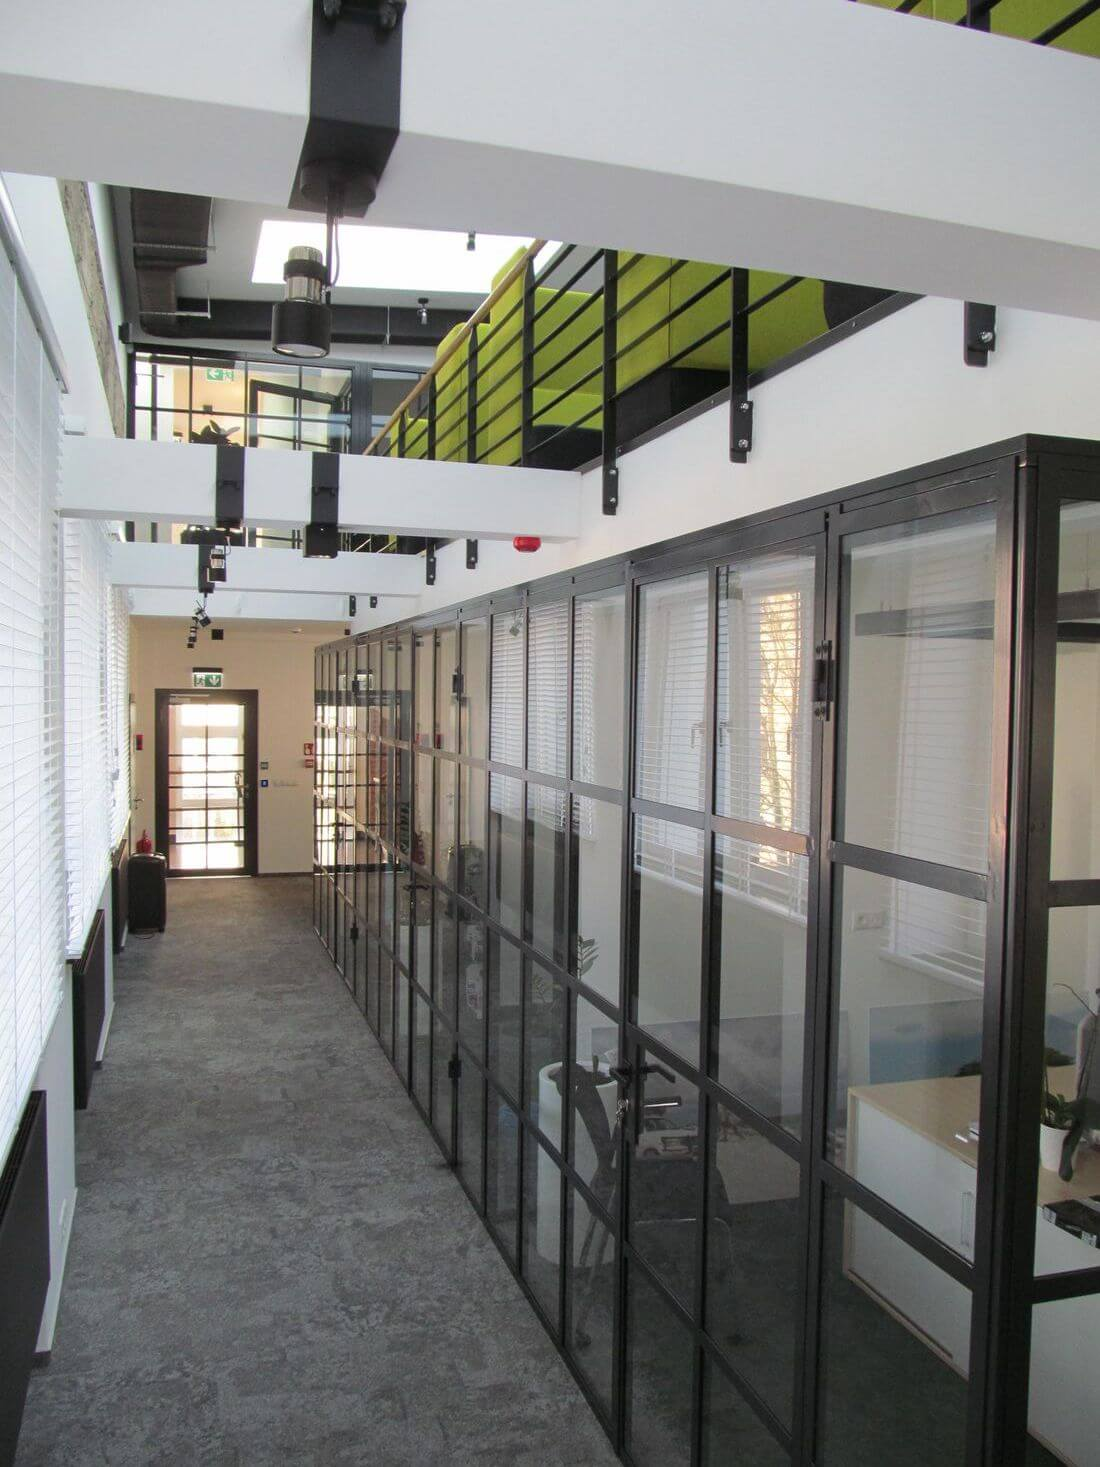 EIP Loft System Industrial Loft Doors and Loft Walls made of structural steel and glass in Warsaw